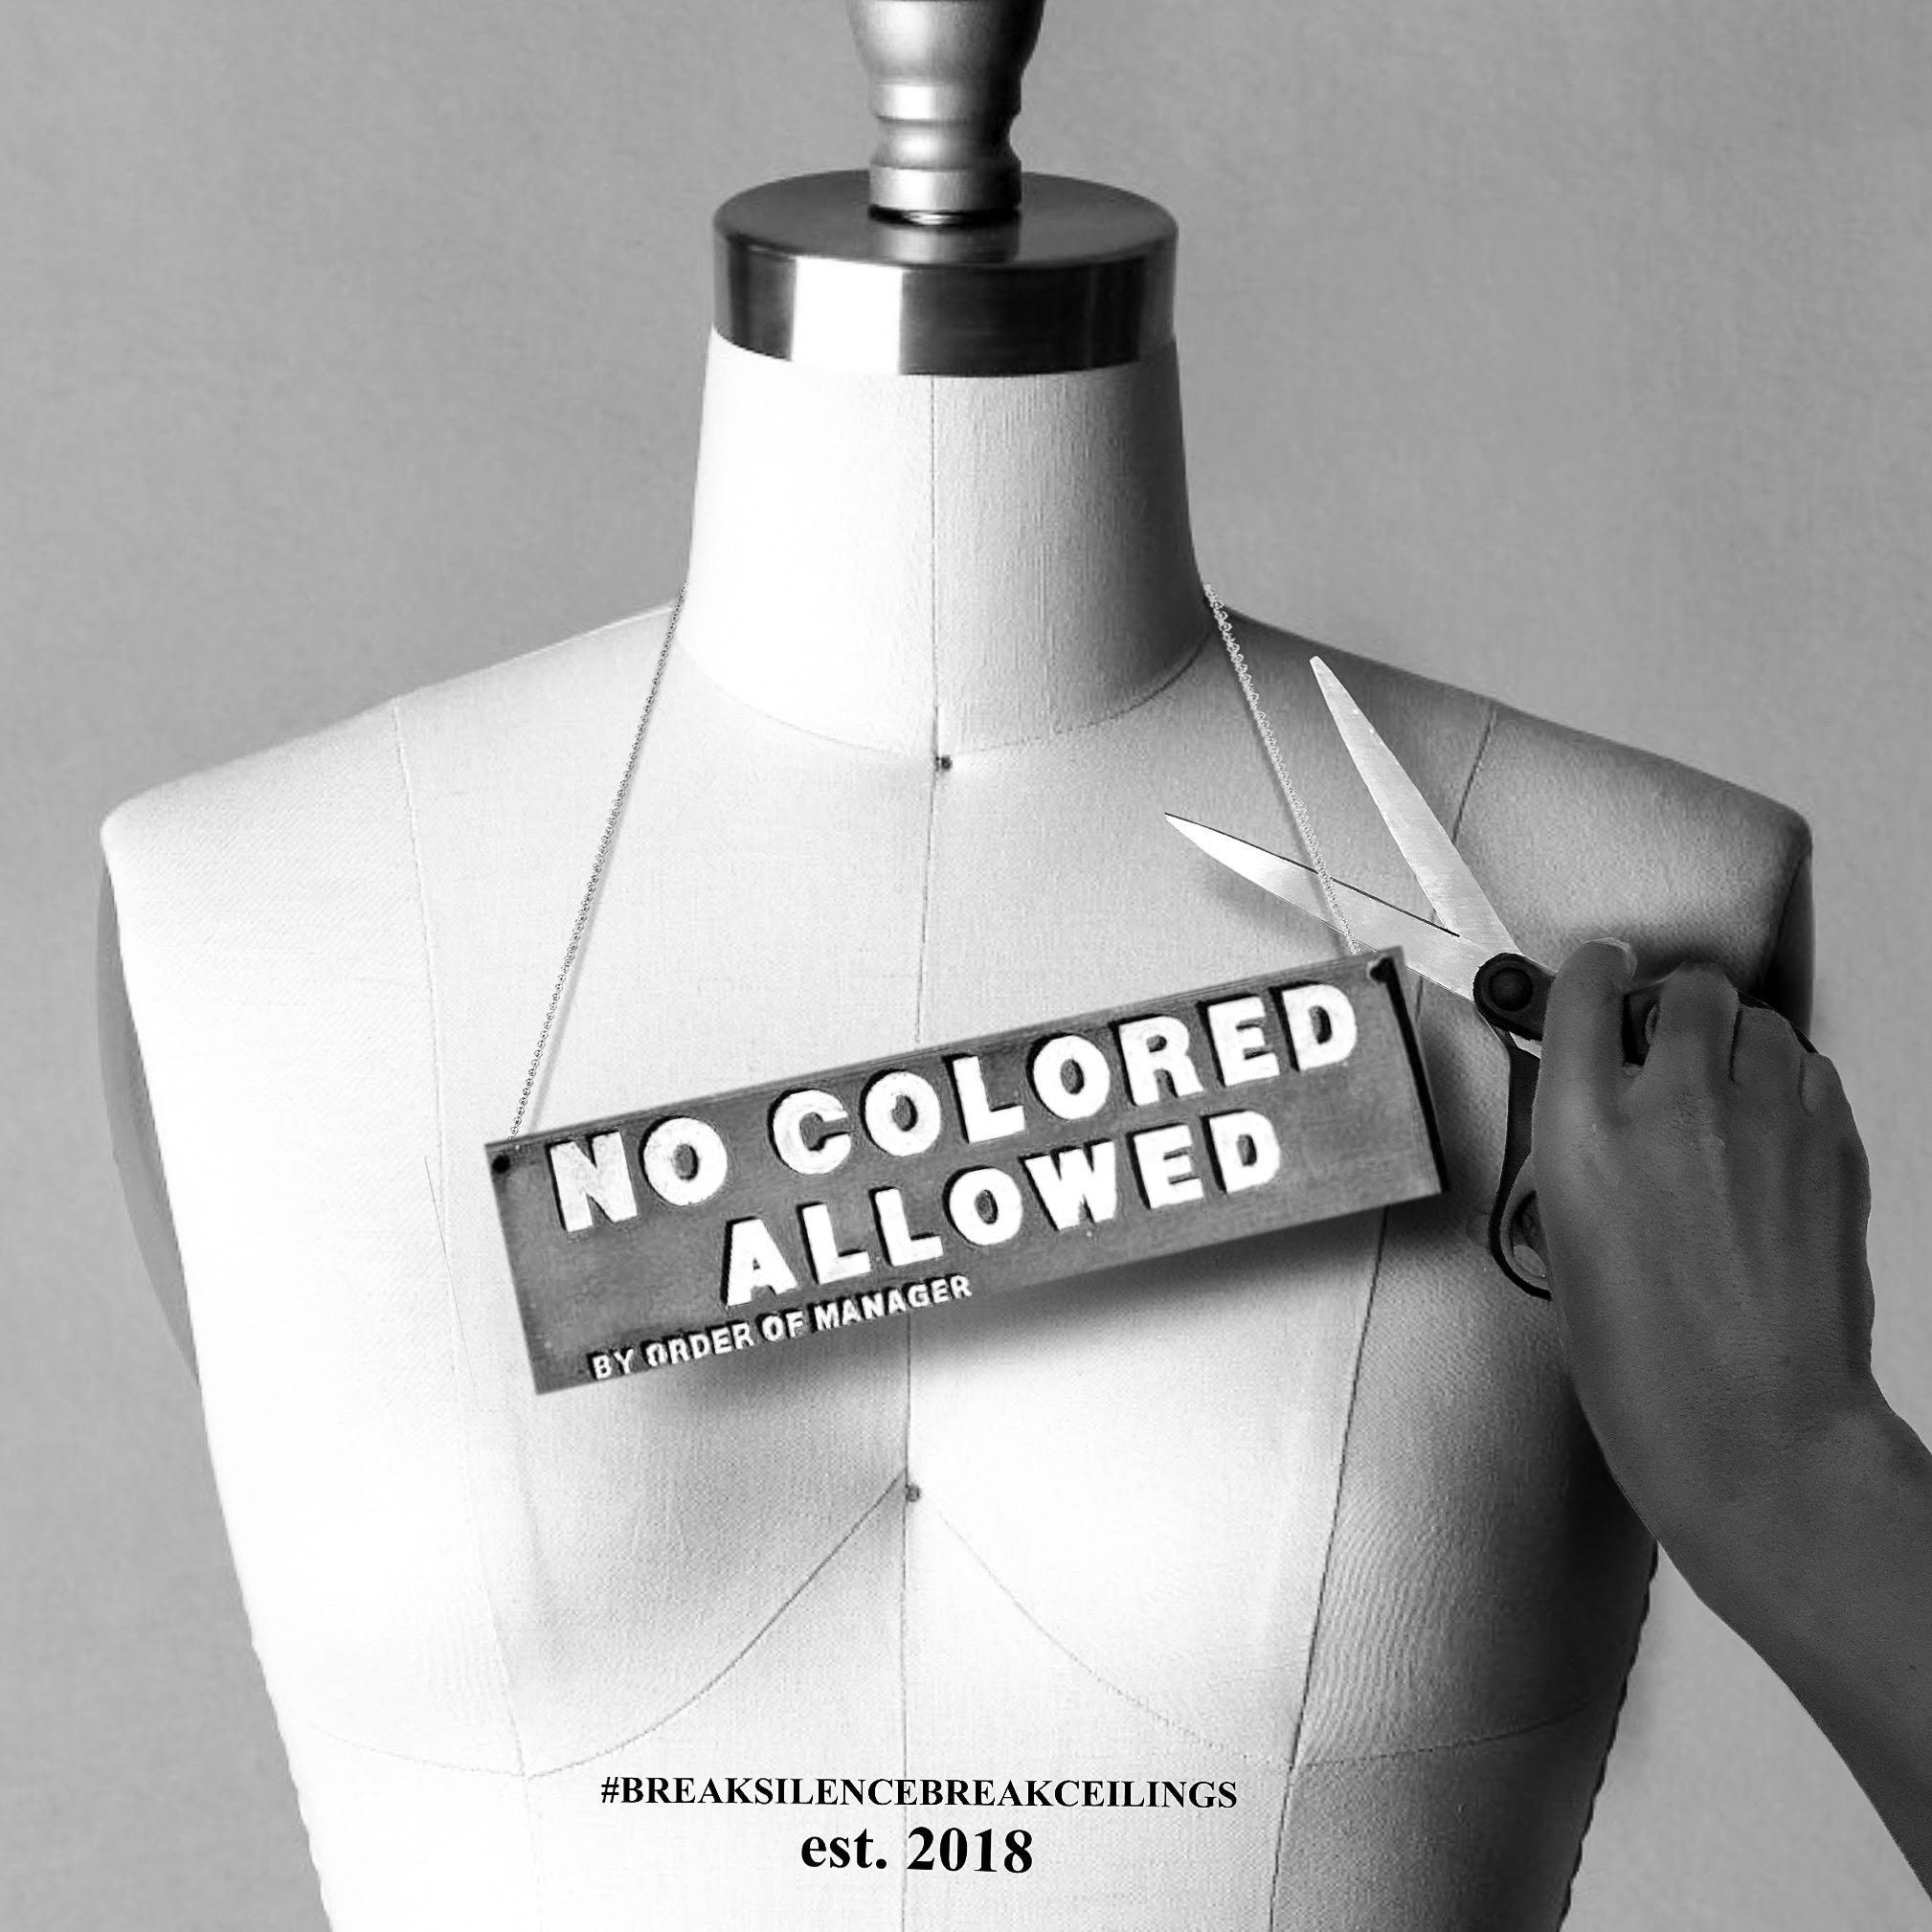 It is time to address the systemic anti-Blackness of the fashion industry